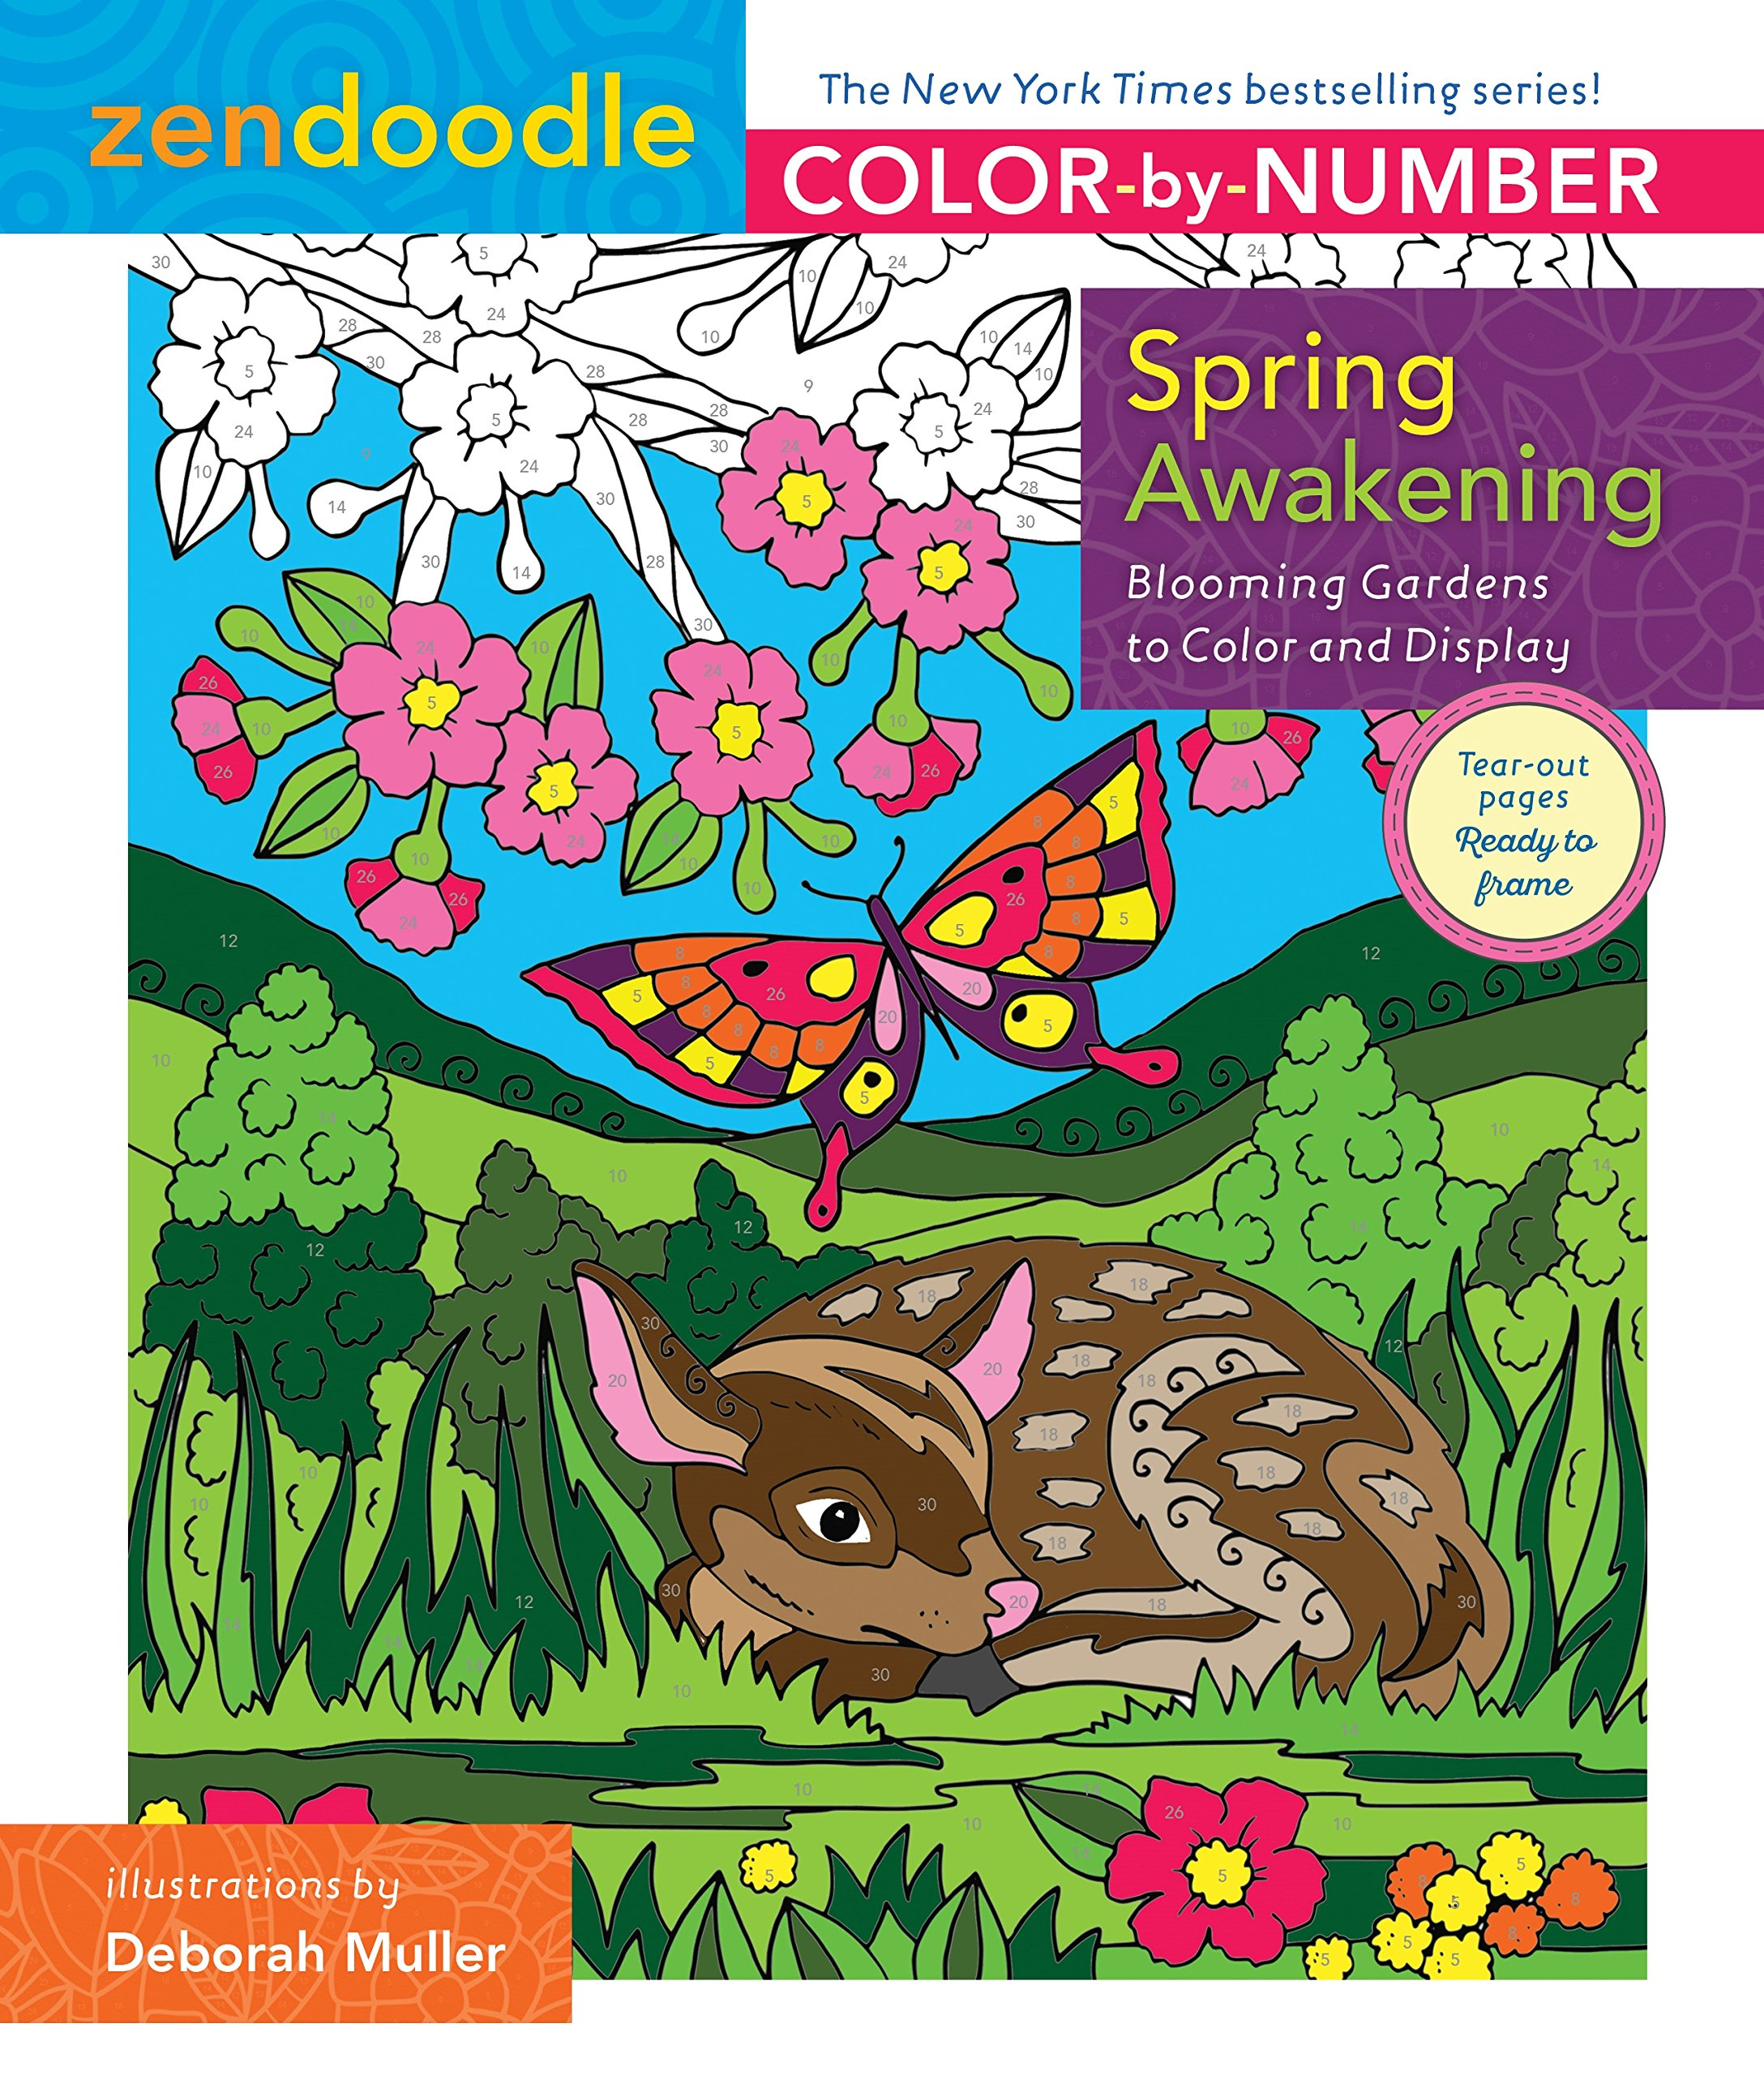 Amazon.com: Zendoodle Color-by-Number: Spring Awakening: Blooming ...